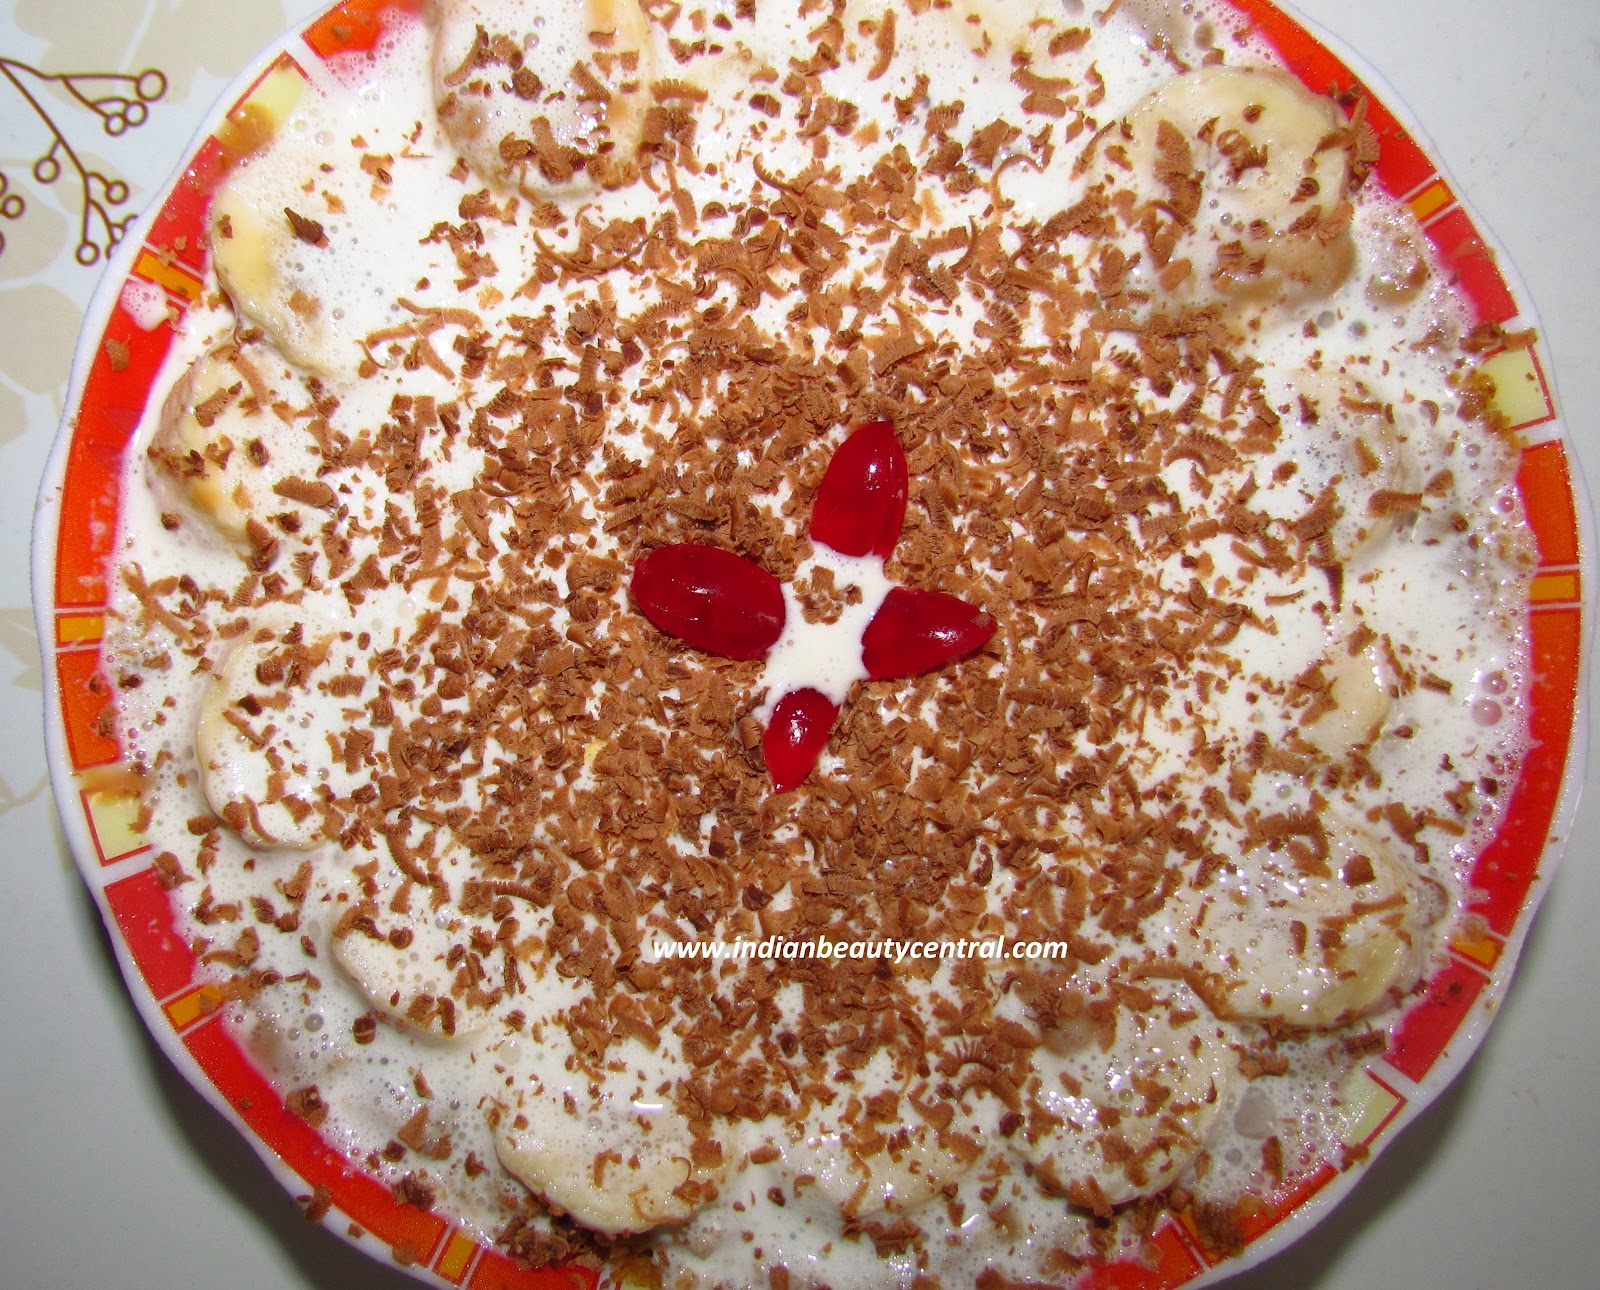 IBC Sunday Food Fiesta- How to make Banoffee pie at home